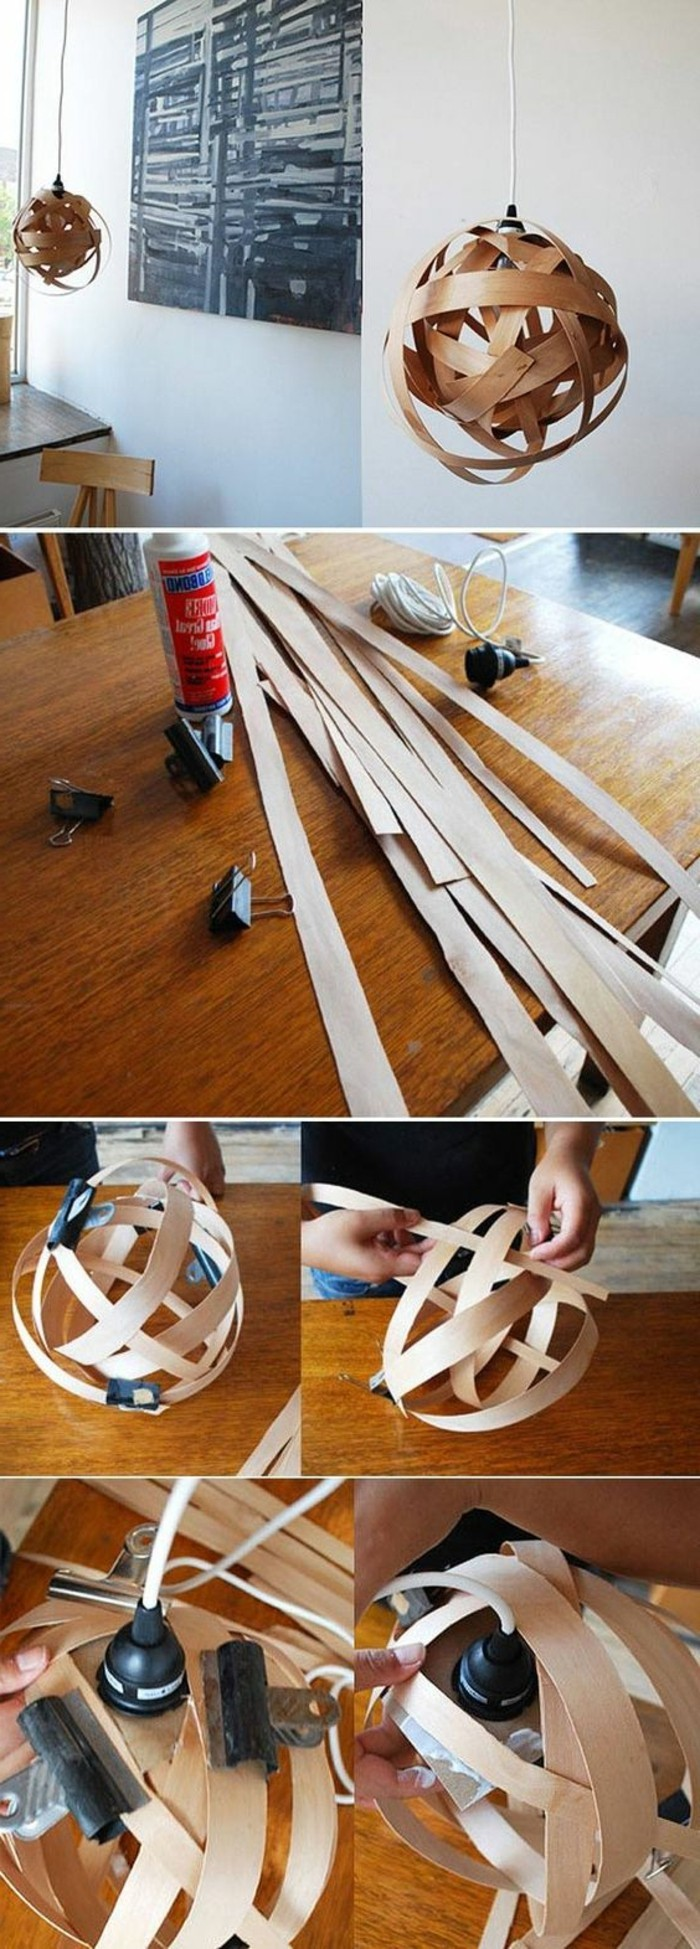 diy lampe 76 super coole bastelideen dazu. Black Bedroom Furniture Sets. Home Design Ideas